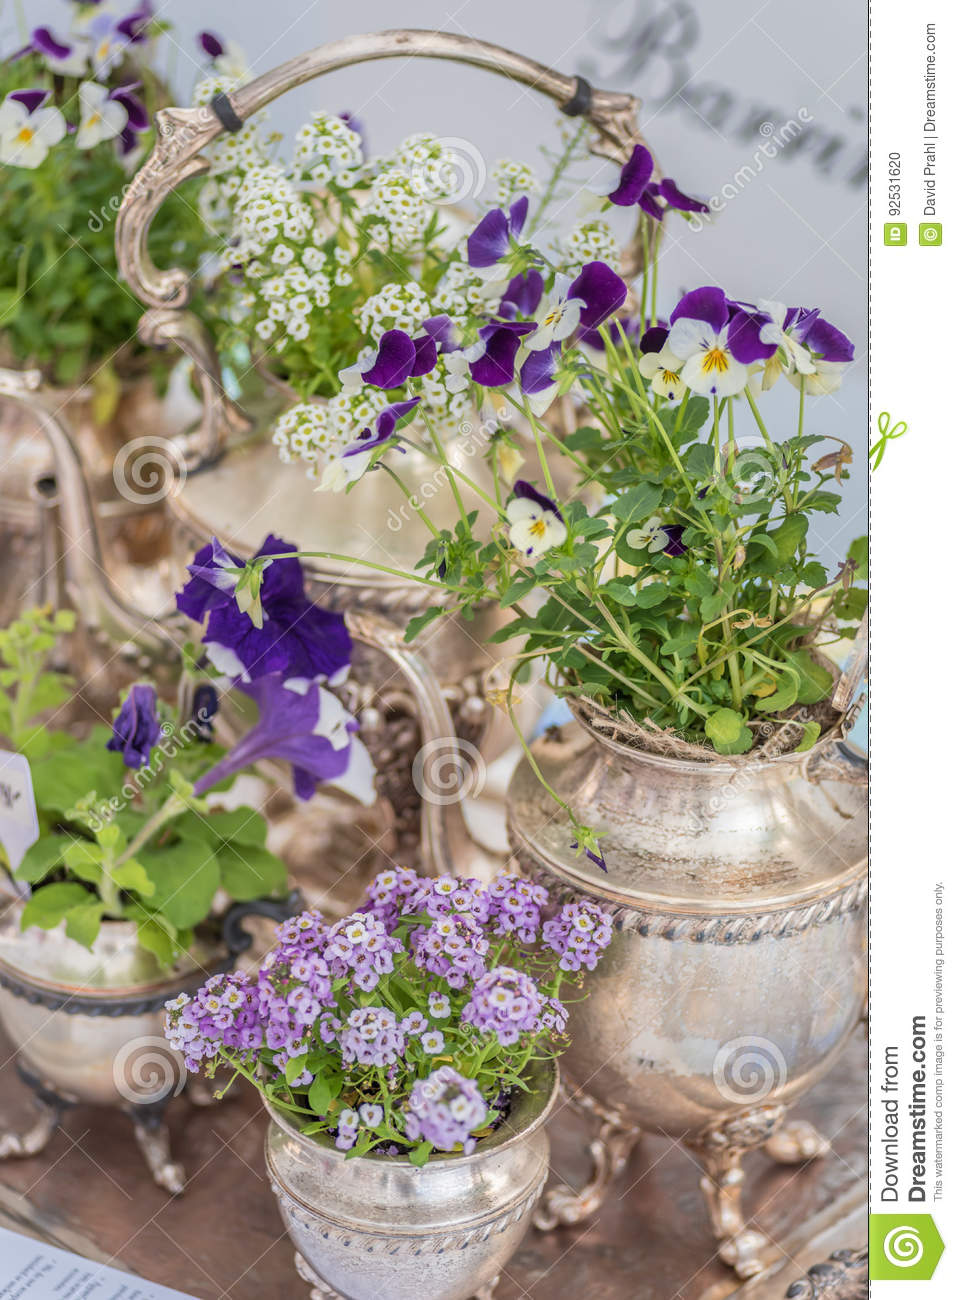 Silver Tea Set Used As Planters With Purple And White Flowers Stock